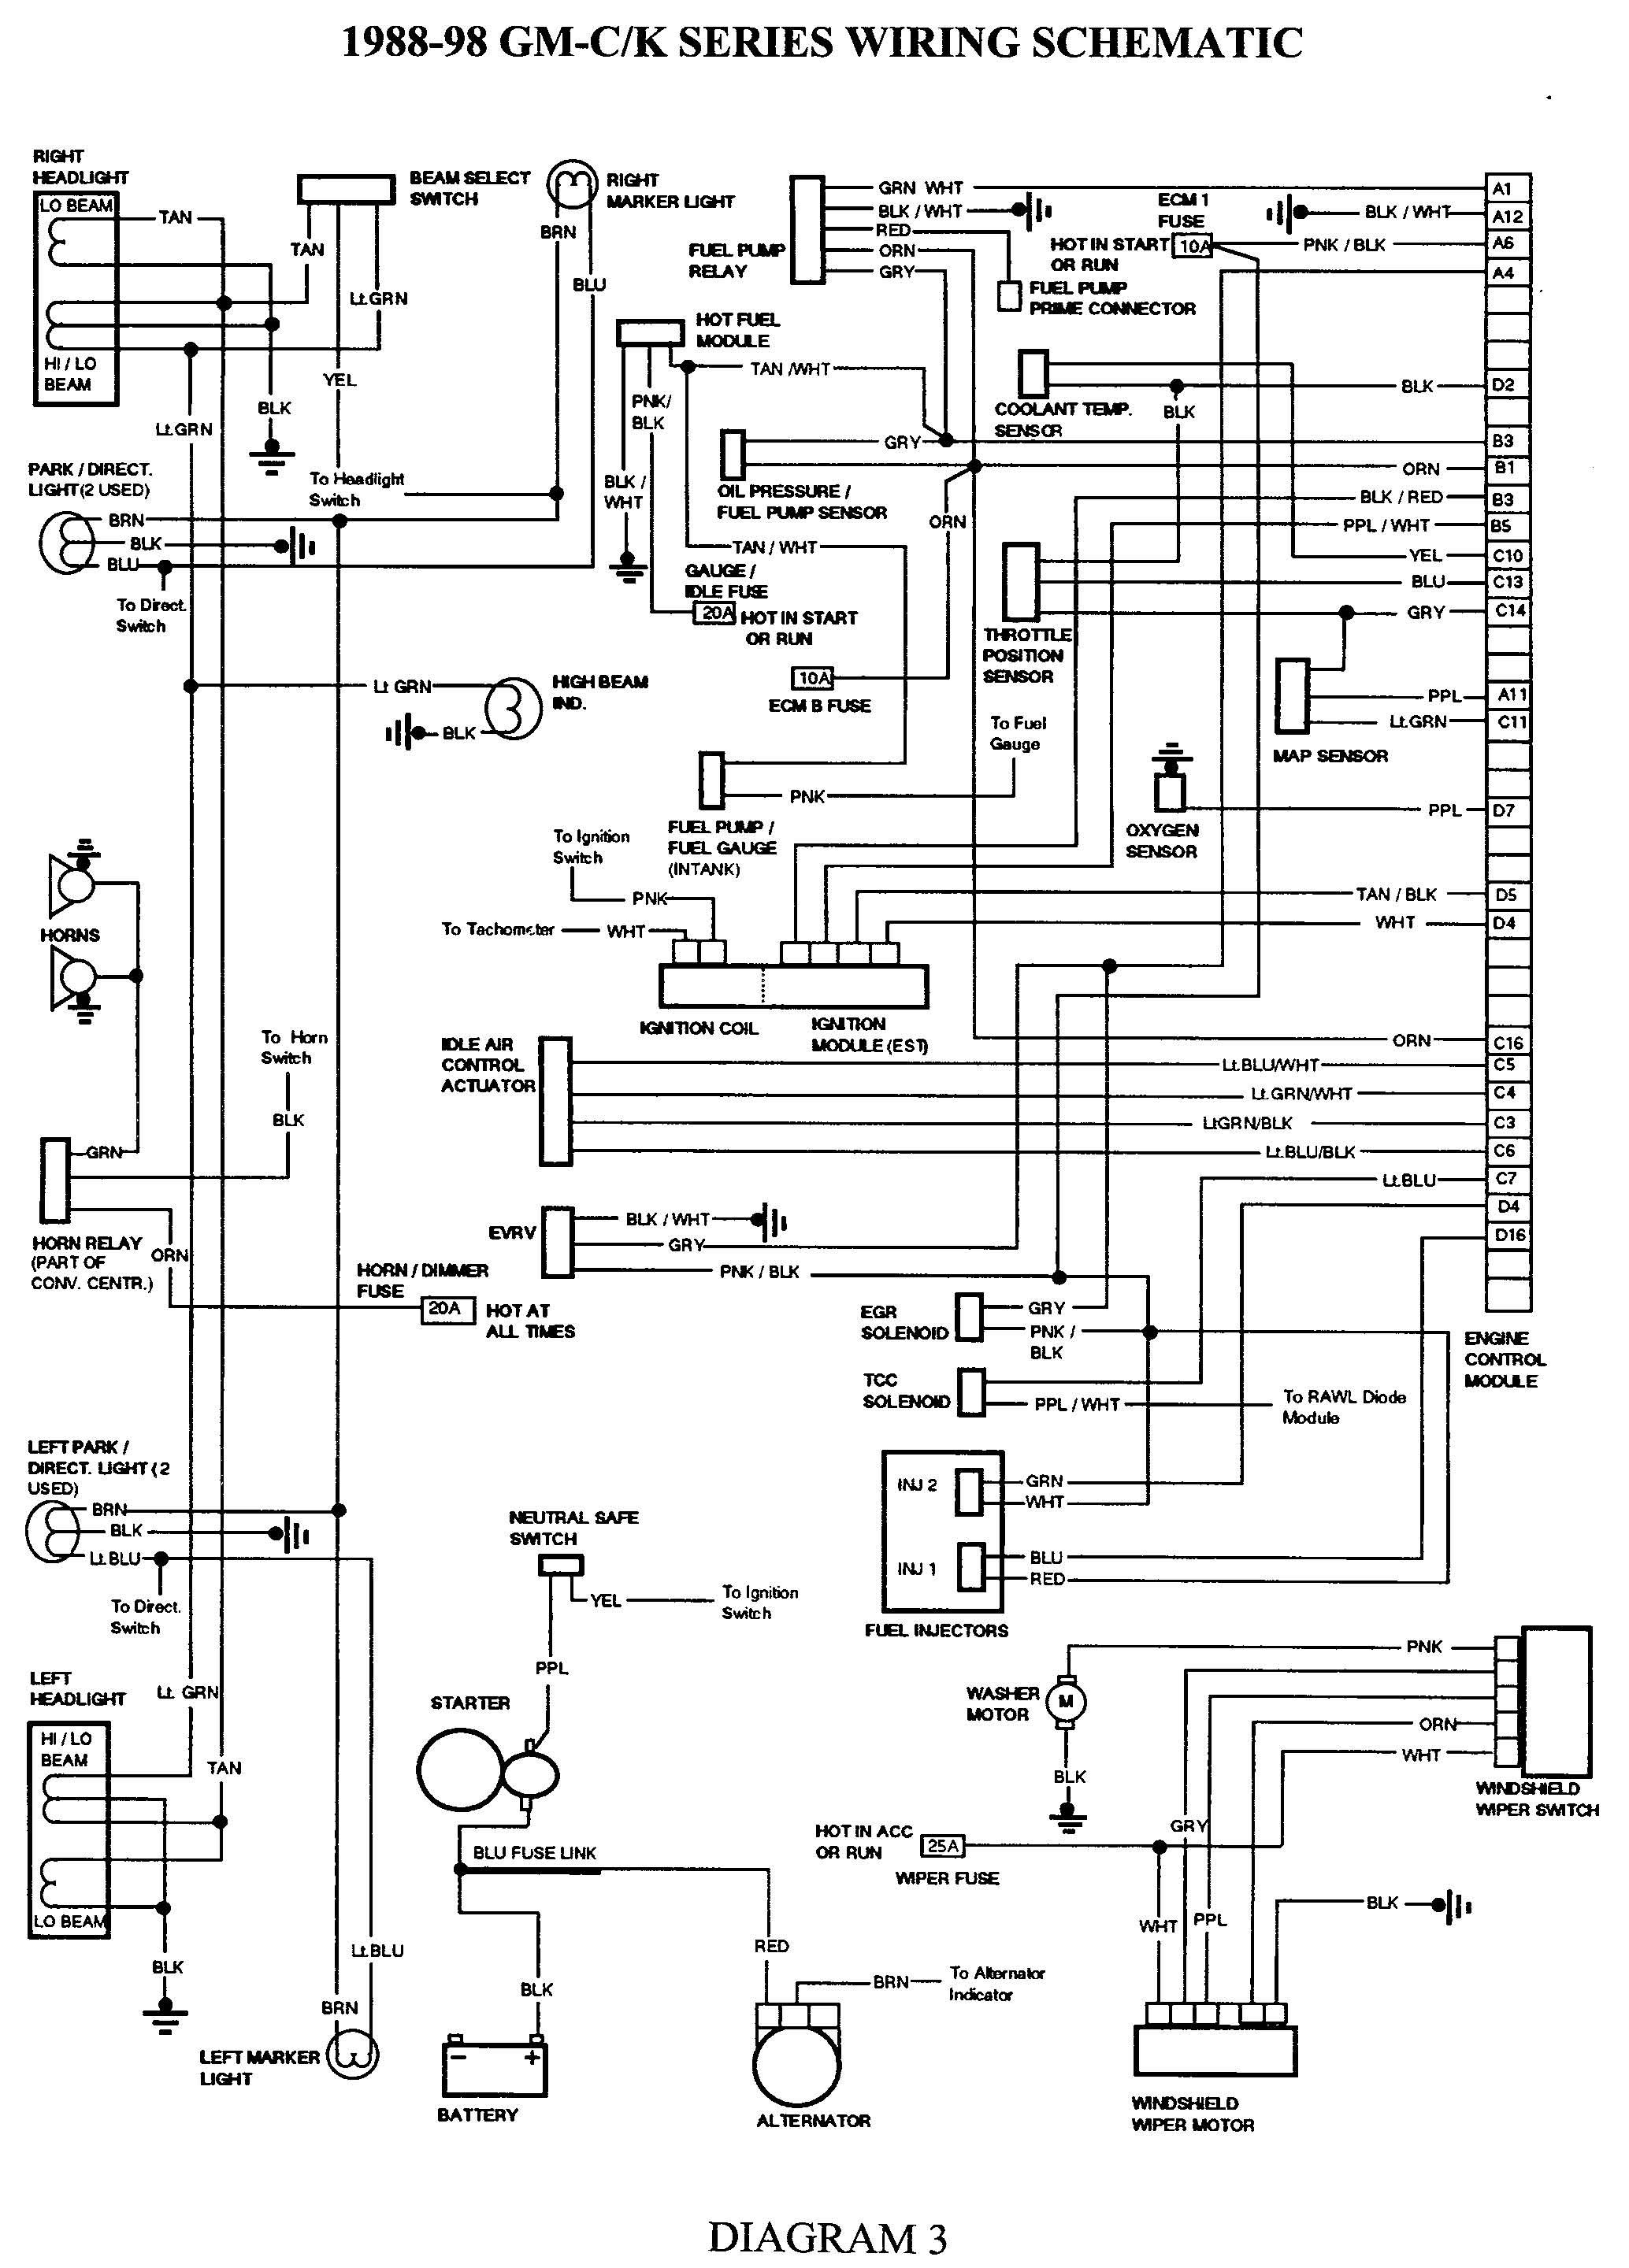 gmc wiring diagram data wiring diagrams u2022 rh mikeadkinsguitar com gmc truck wiring trailer 1979 gmc truck wiring diagram